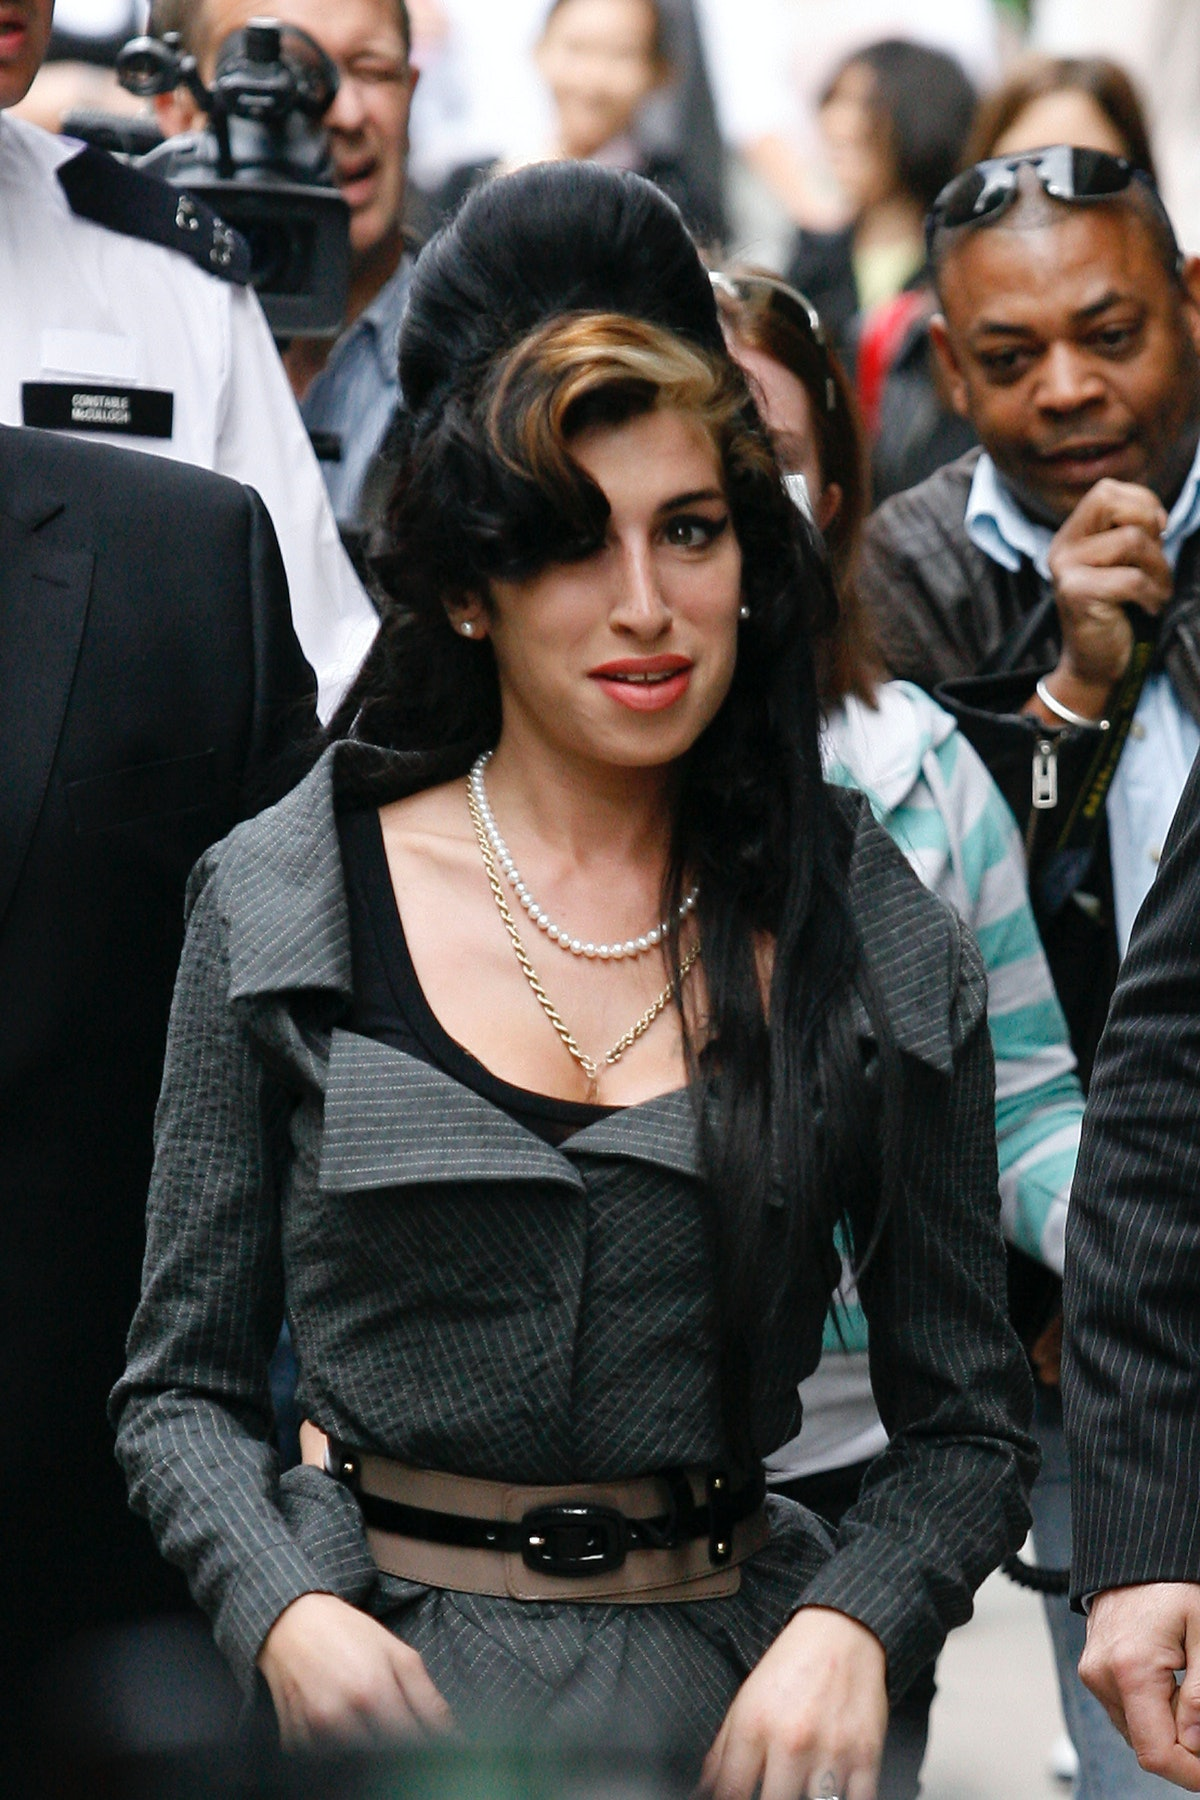 Amy Winehouse Attends Court Charged With Assault